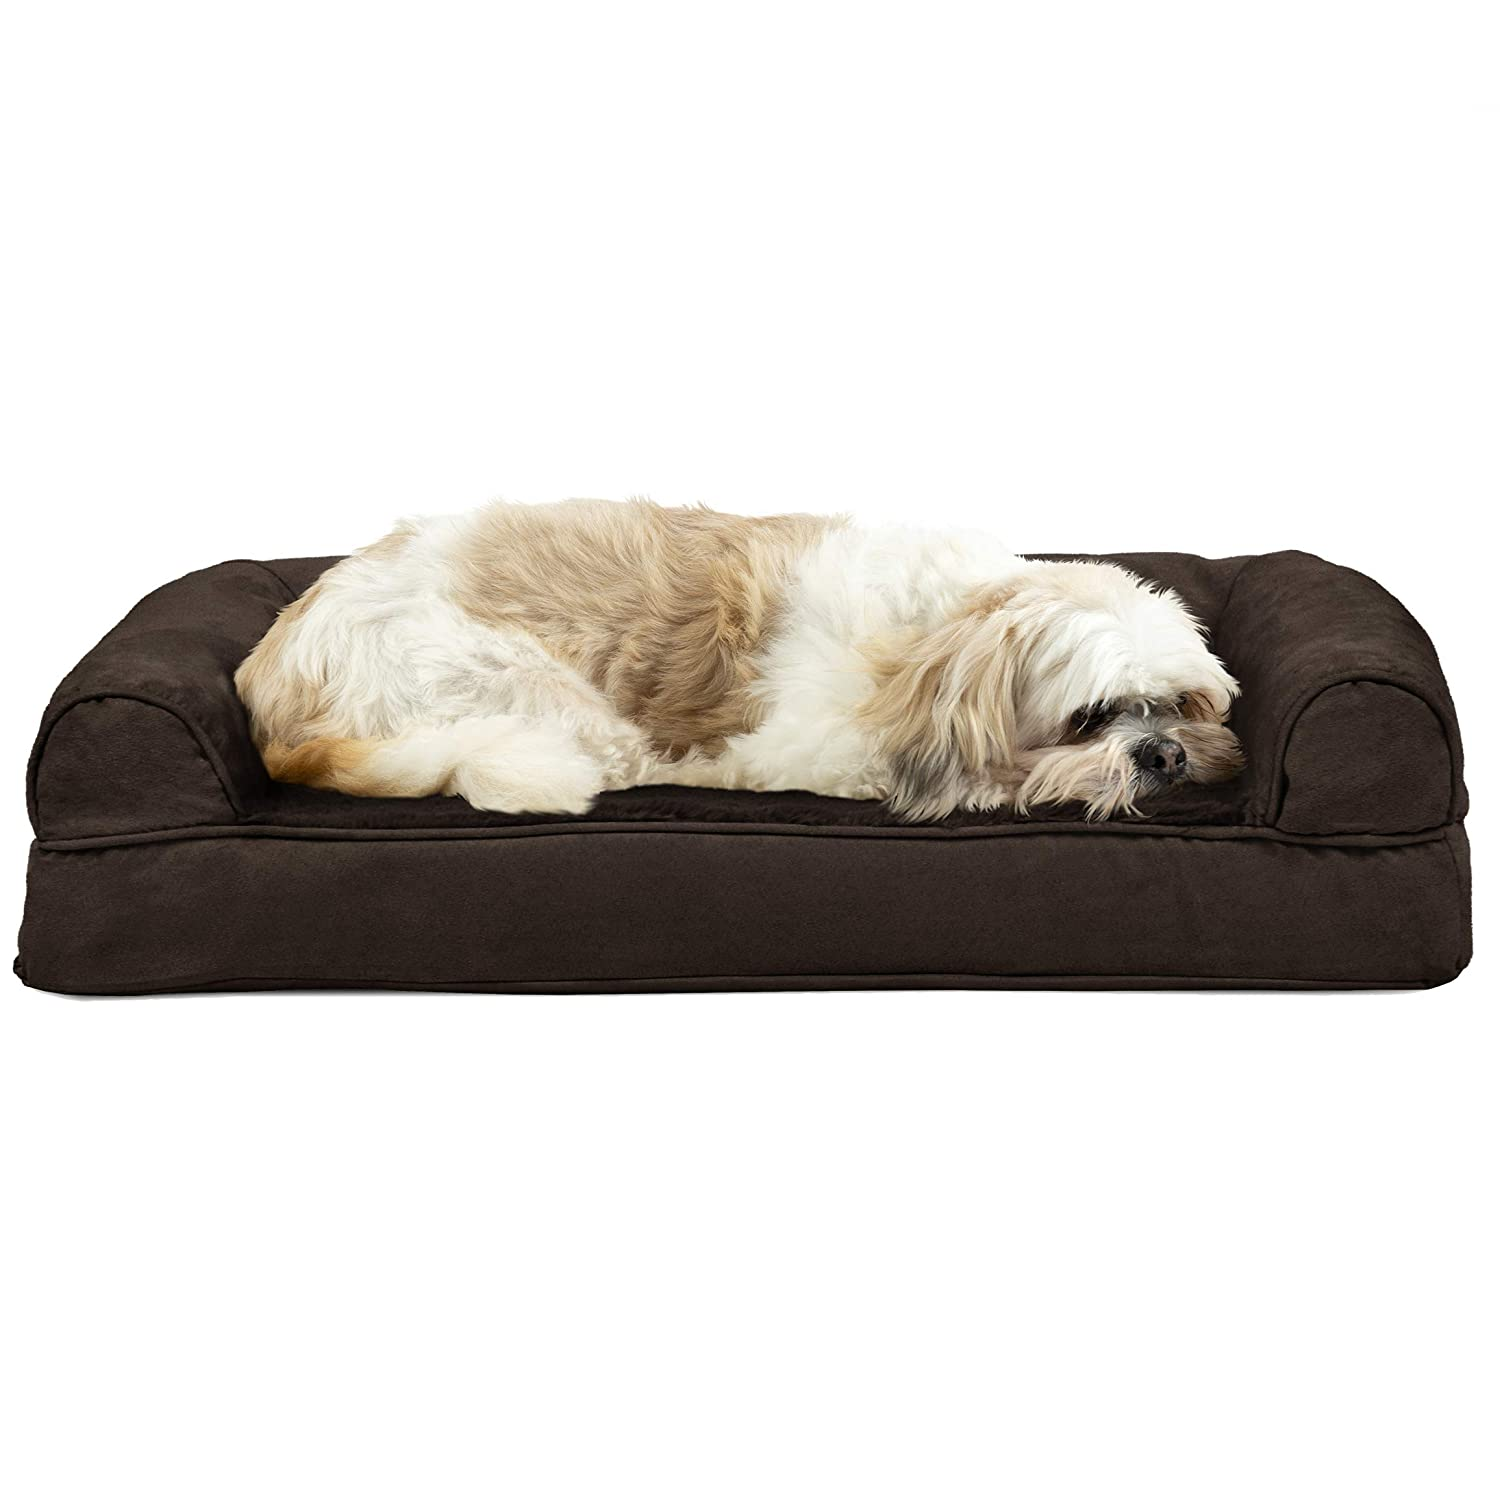 Furhaven Pet Dog Bed   Cooling Gel Memory Foam Orthopedic Ultra Plush Sofa-Style Couch Pet Bed for Dogs & Cats, Espresso, Medium